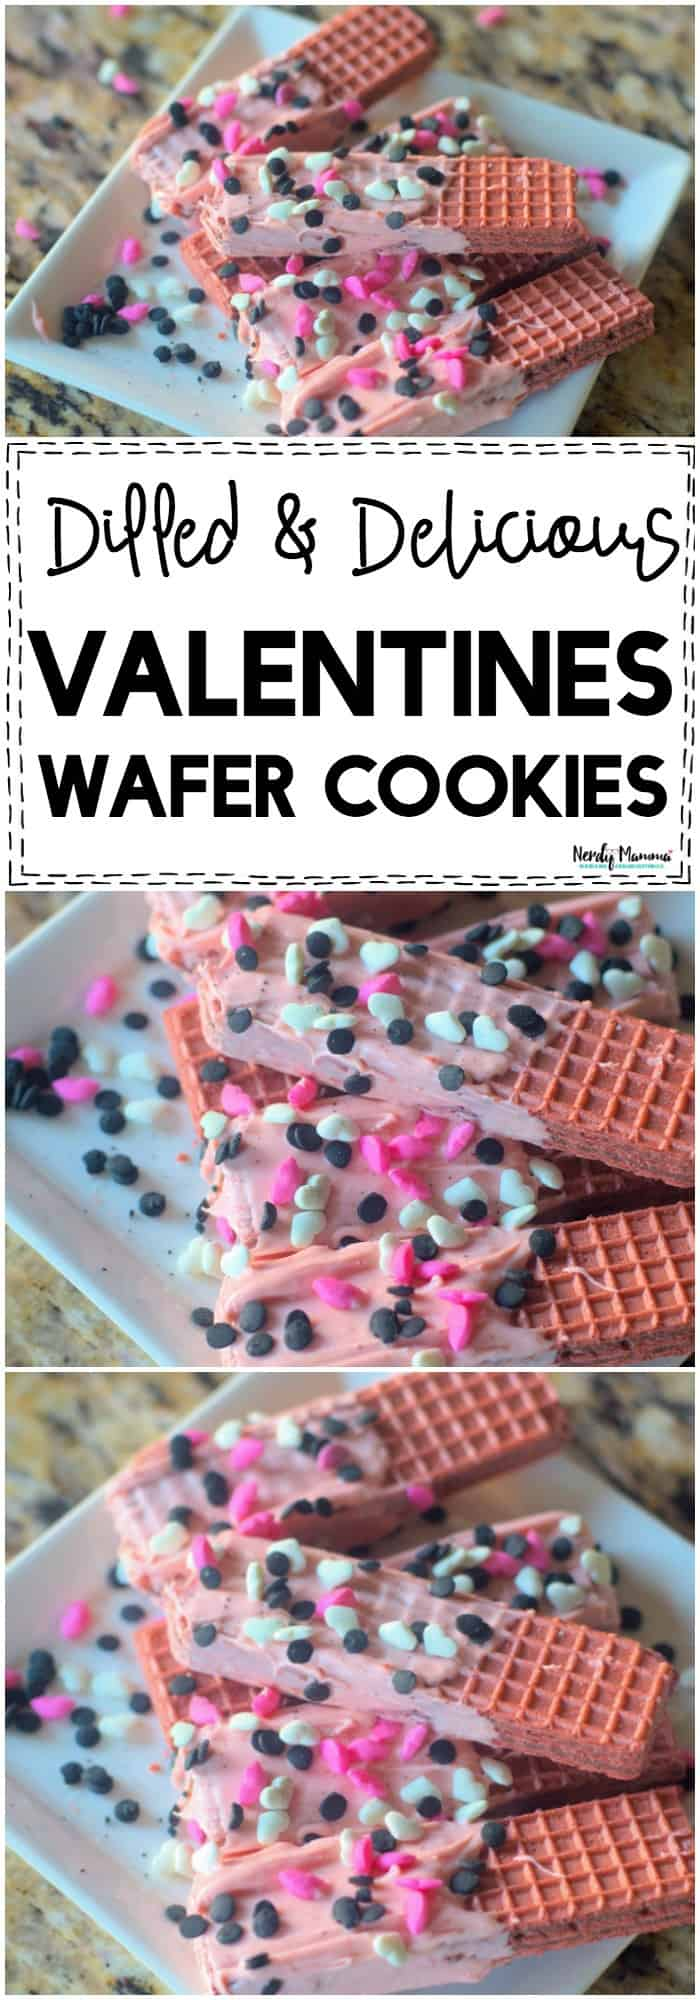 OMG! These deliciously dipped Valentines Wafer Cookies are the PERFECT Valentine dessert! So simple and yummy!